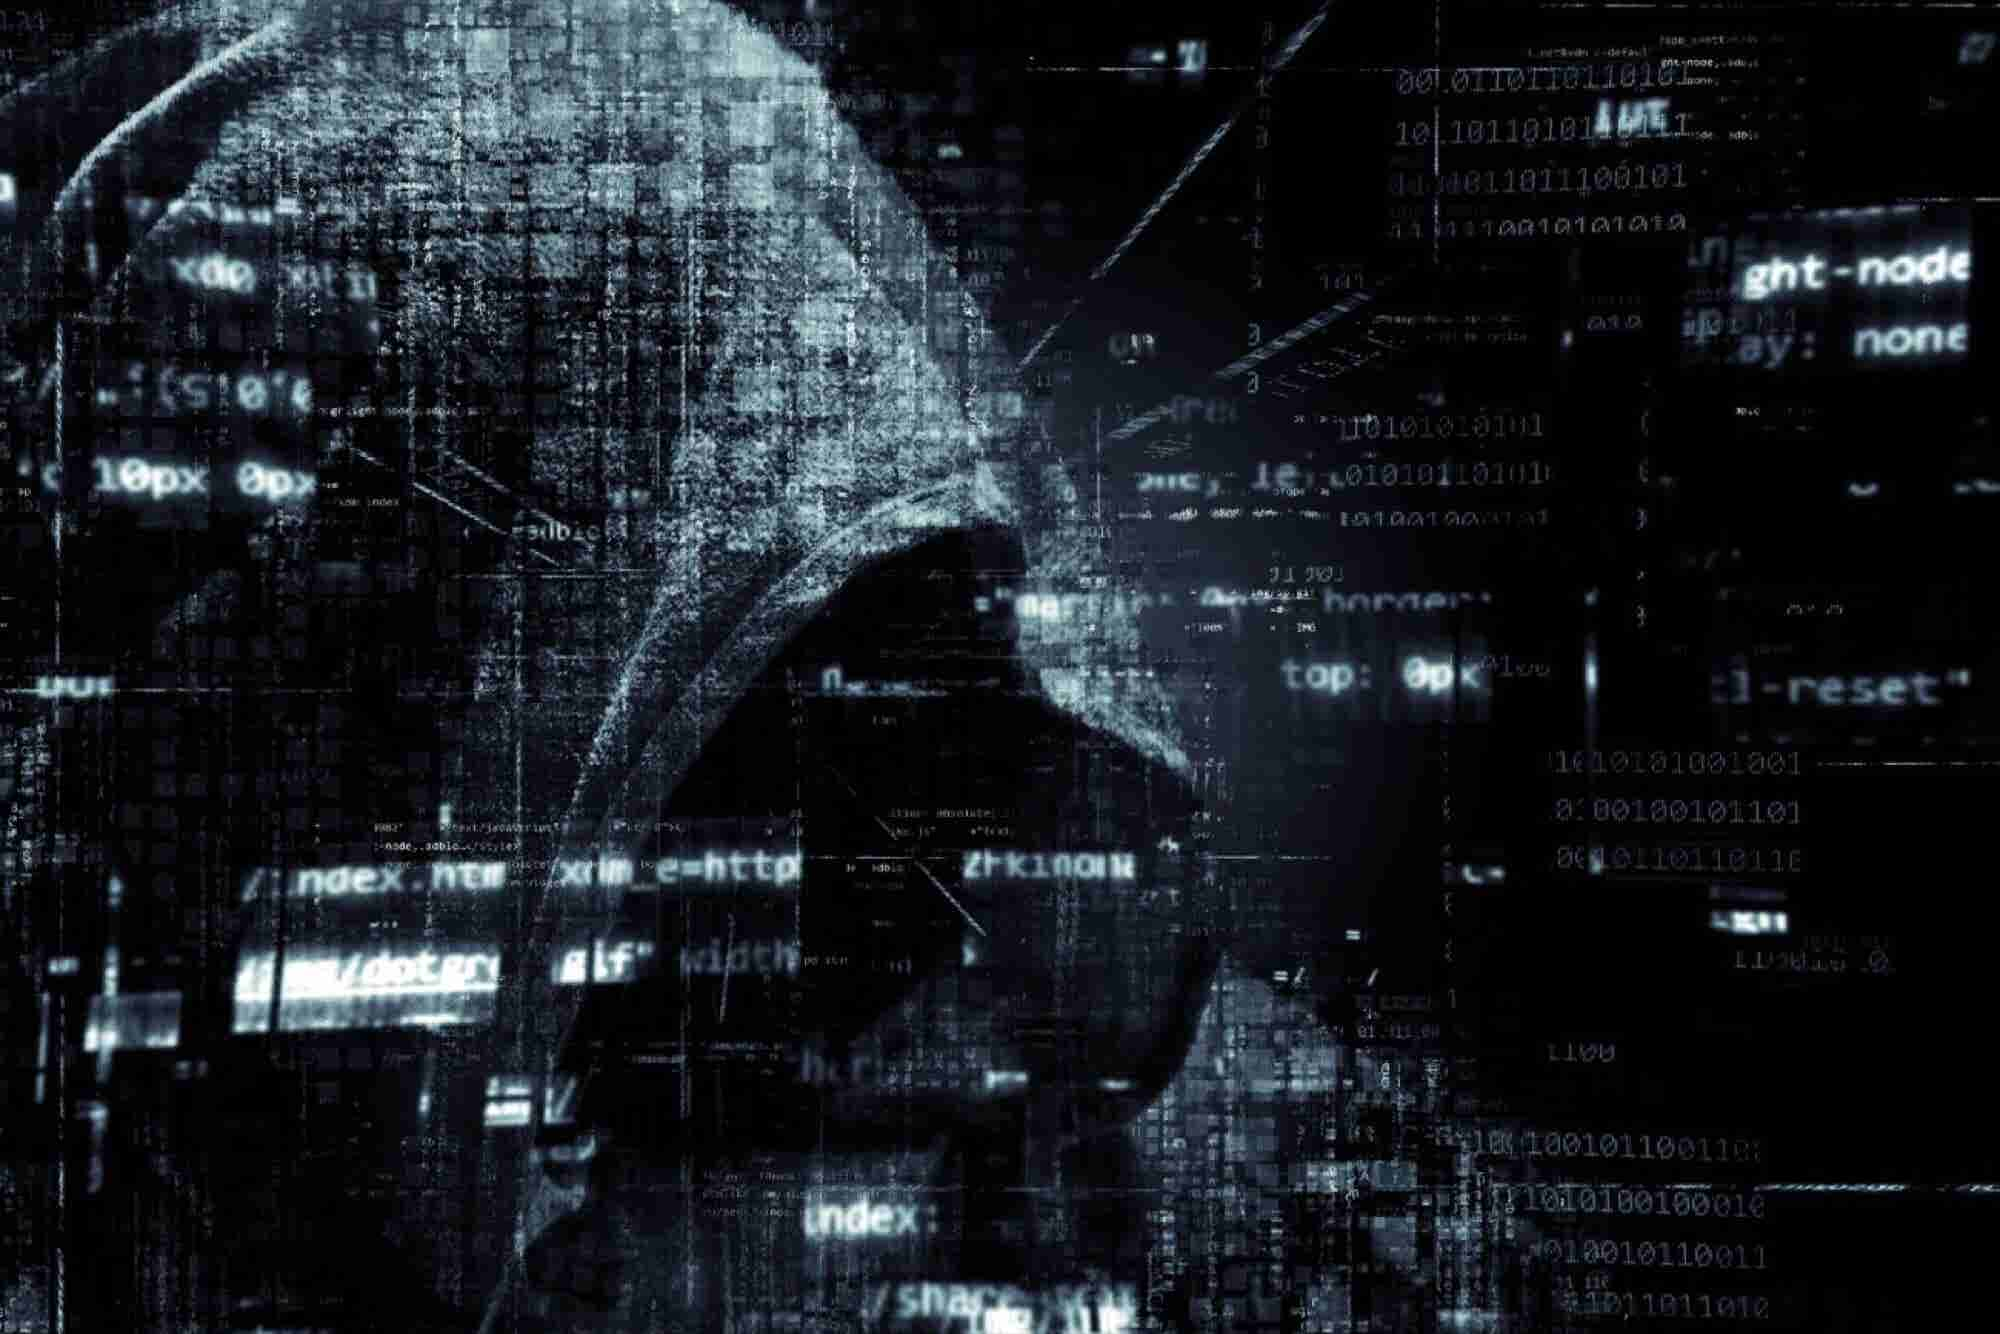 #3 Indian Cyber Security Gurus on Hacks to Fight an Attack